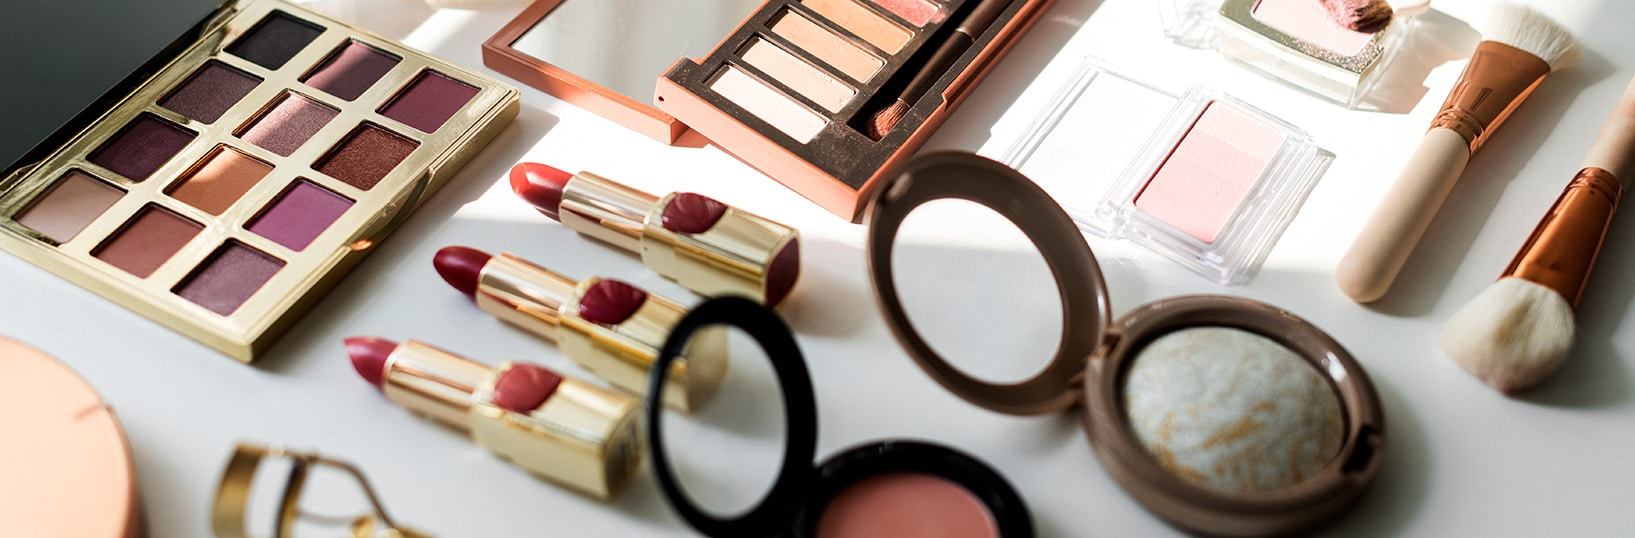 Makeup services in Greenwich, London